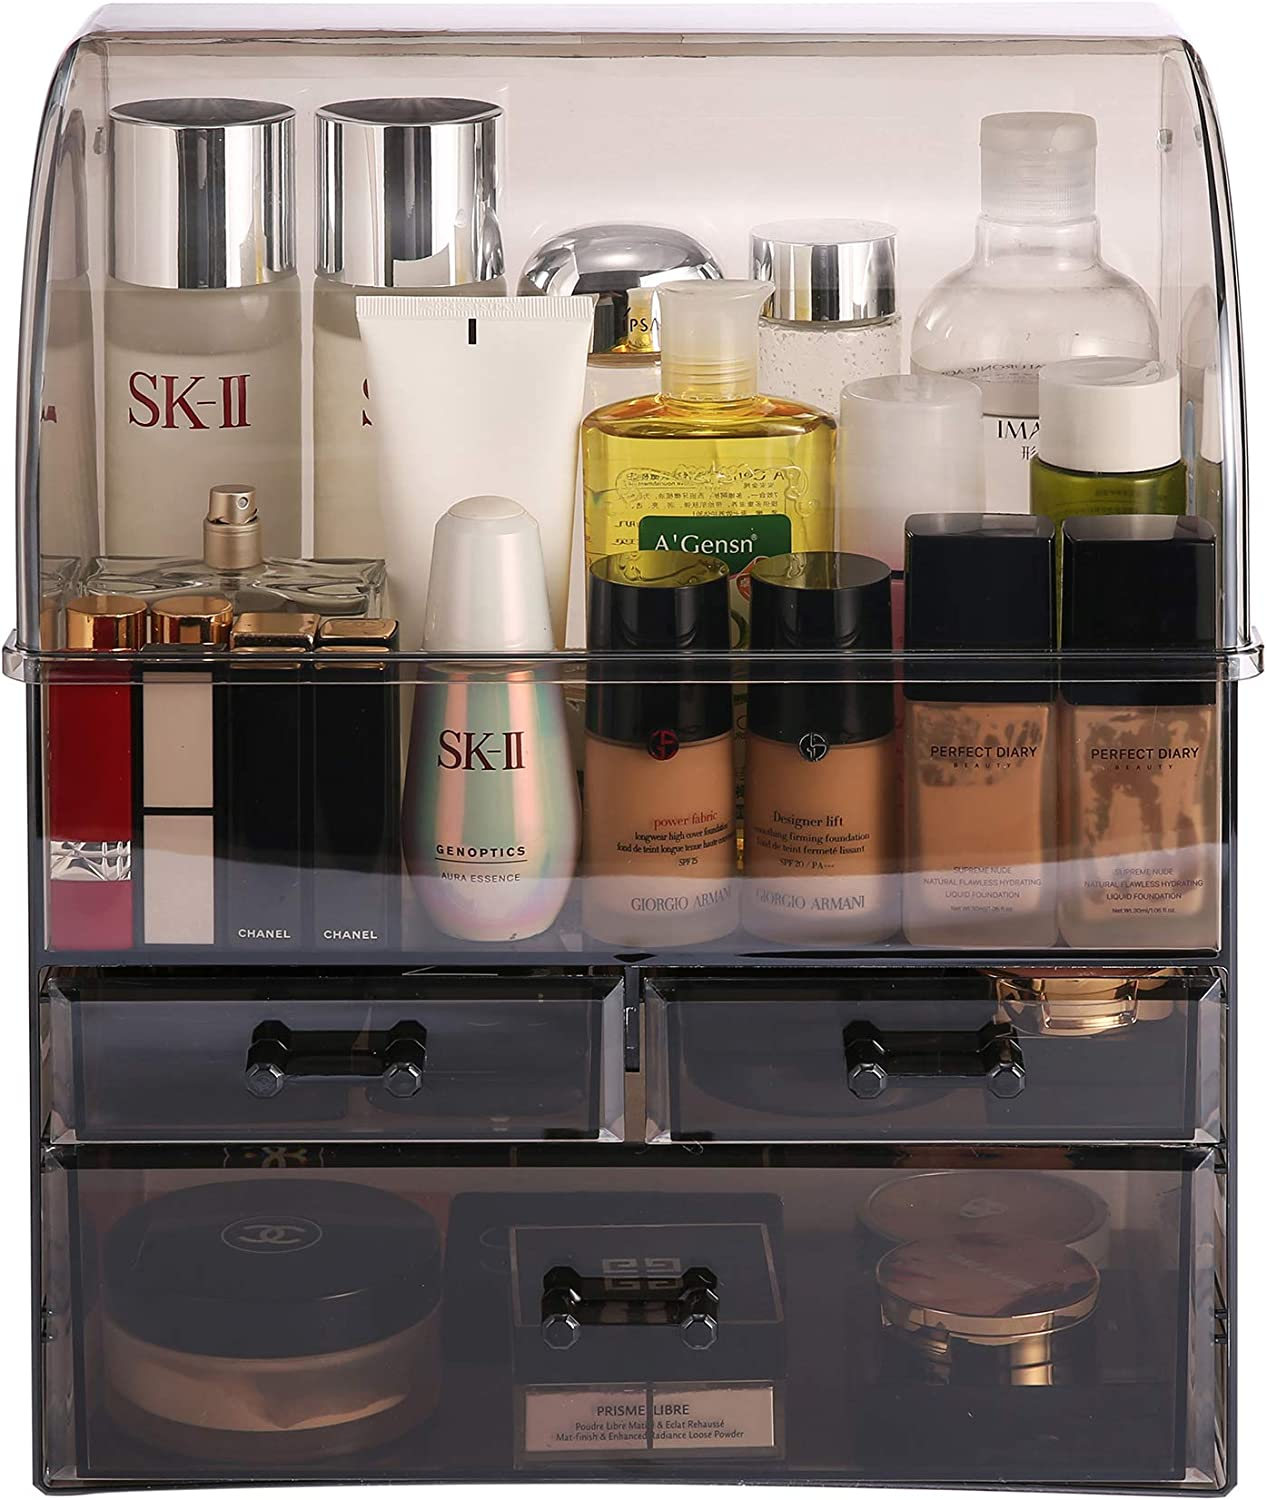 MOOCHI Translucent Black Professional Large Cosmetic Makeup Organizer Dust Water Proof Cosmetics Storage Display Case with Drawers Portable For Brushes Lipsticks Jewelry